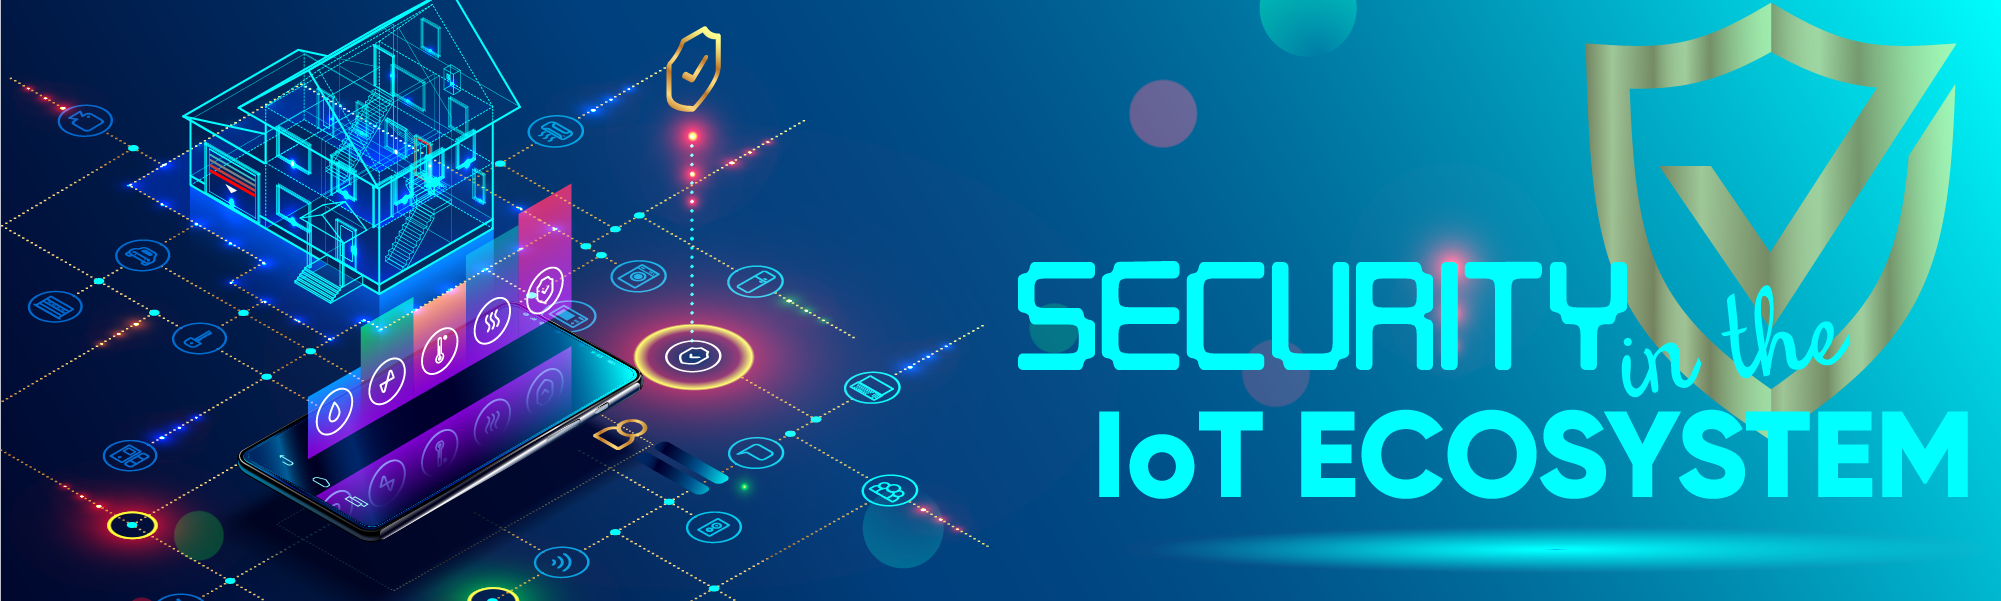 IoT Security Webinar Series